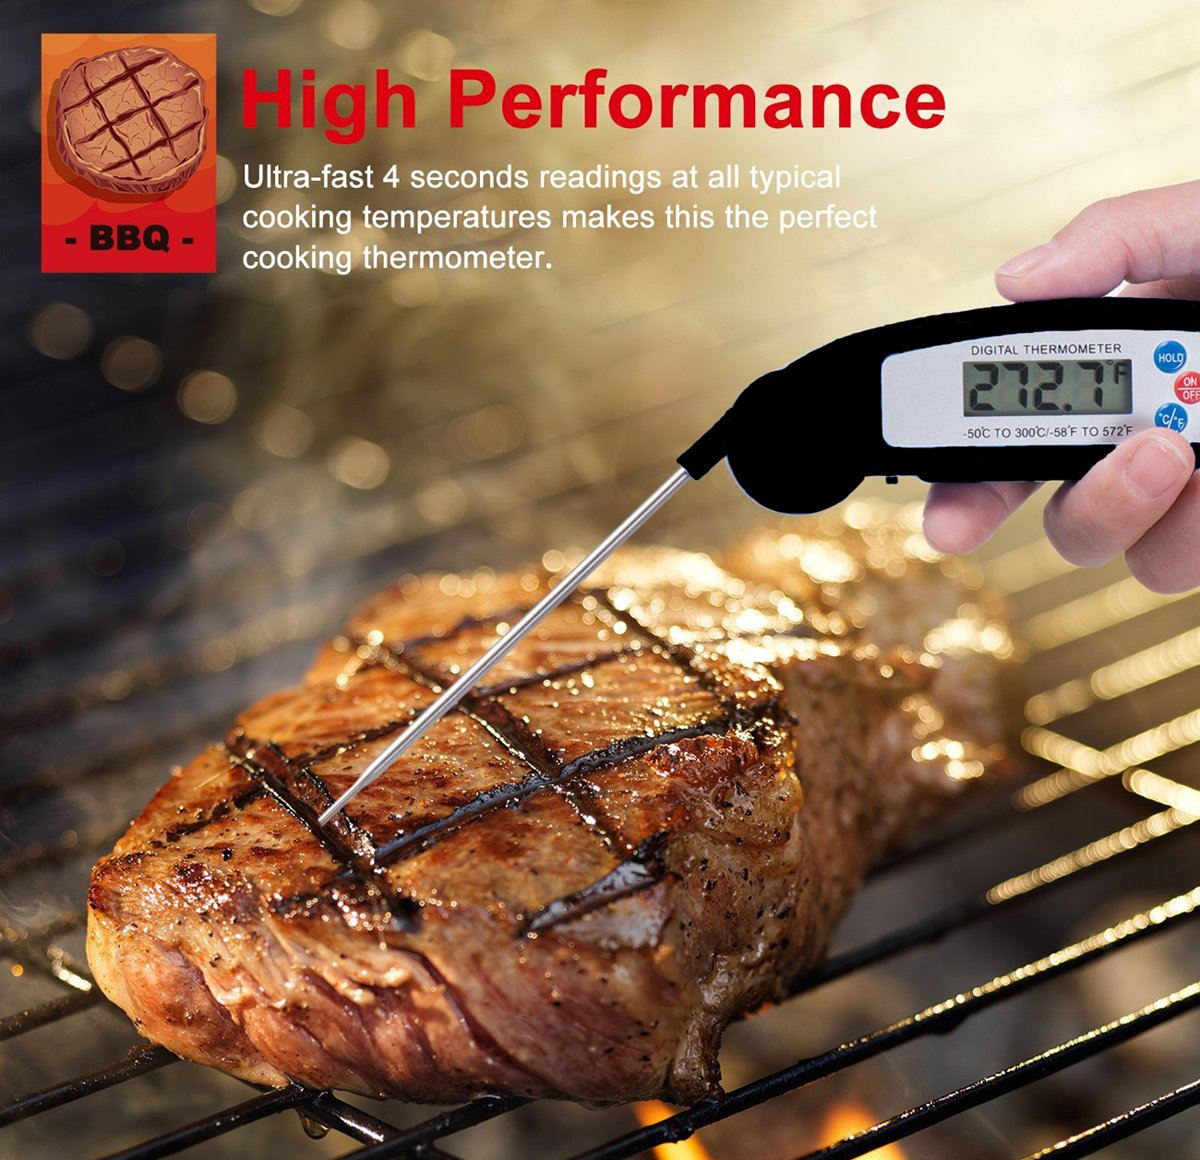 Meat Thermometer, KKCITE Digital Cooking Thermometer Electronic Instant Read Thermometer Food Thermometer, Foldable Long Probe for Kitchen Grill, BBQ, Milk, Candy and Bath Water (Black)